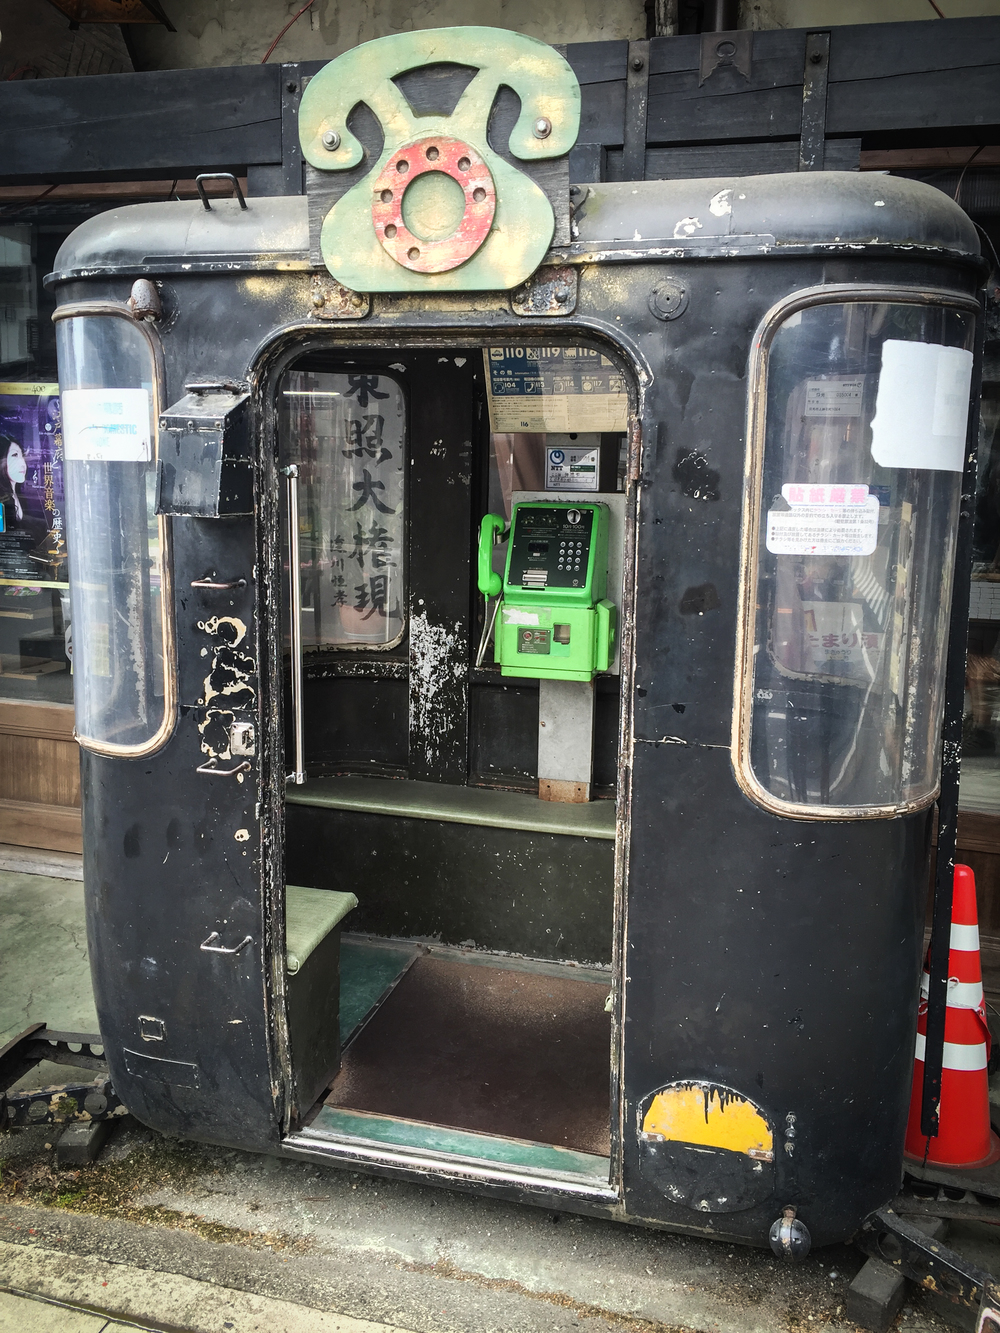 An old phone booth